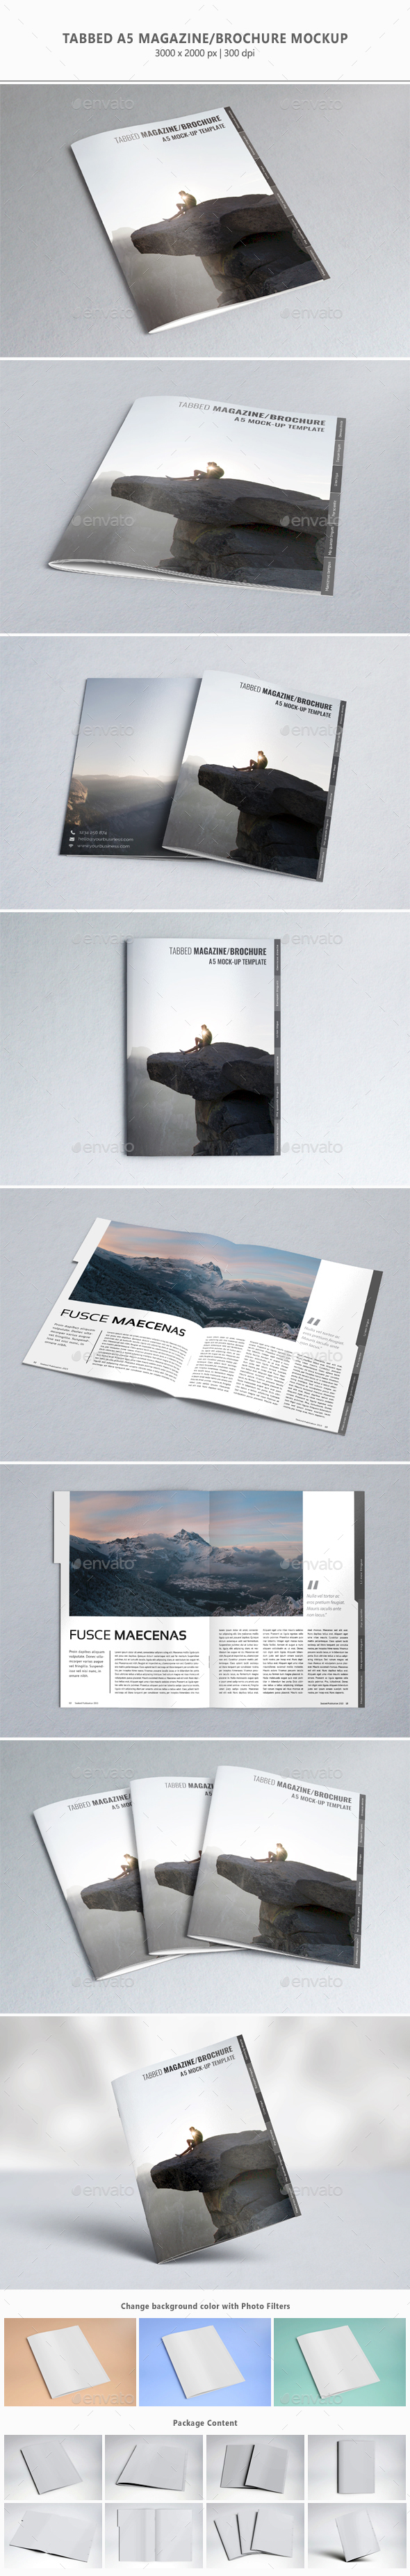 Tabbed A5 Magazine/Brochure Mock-up - Magazines Print